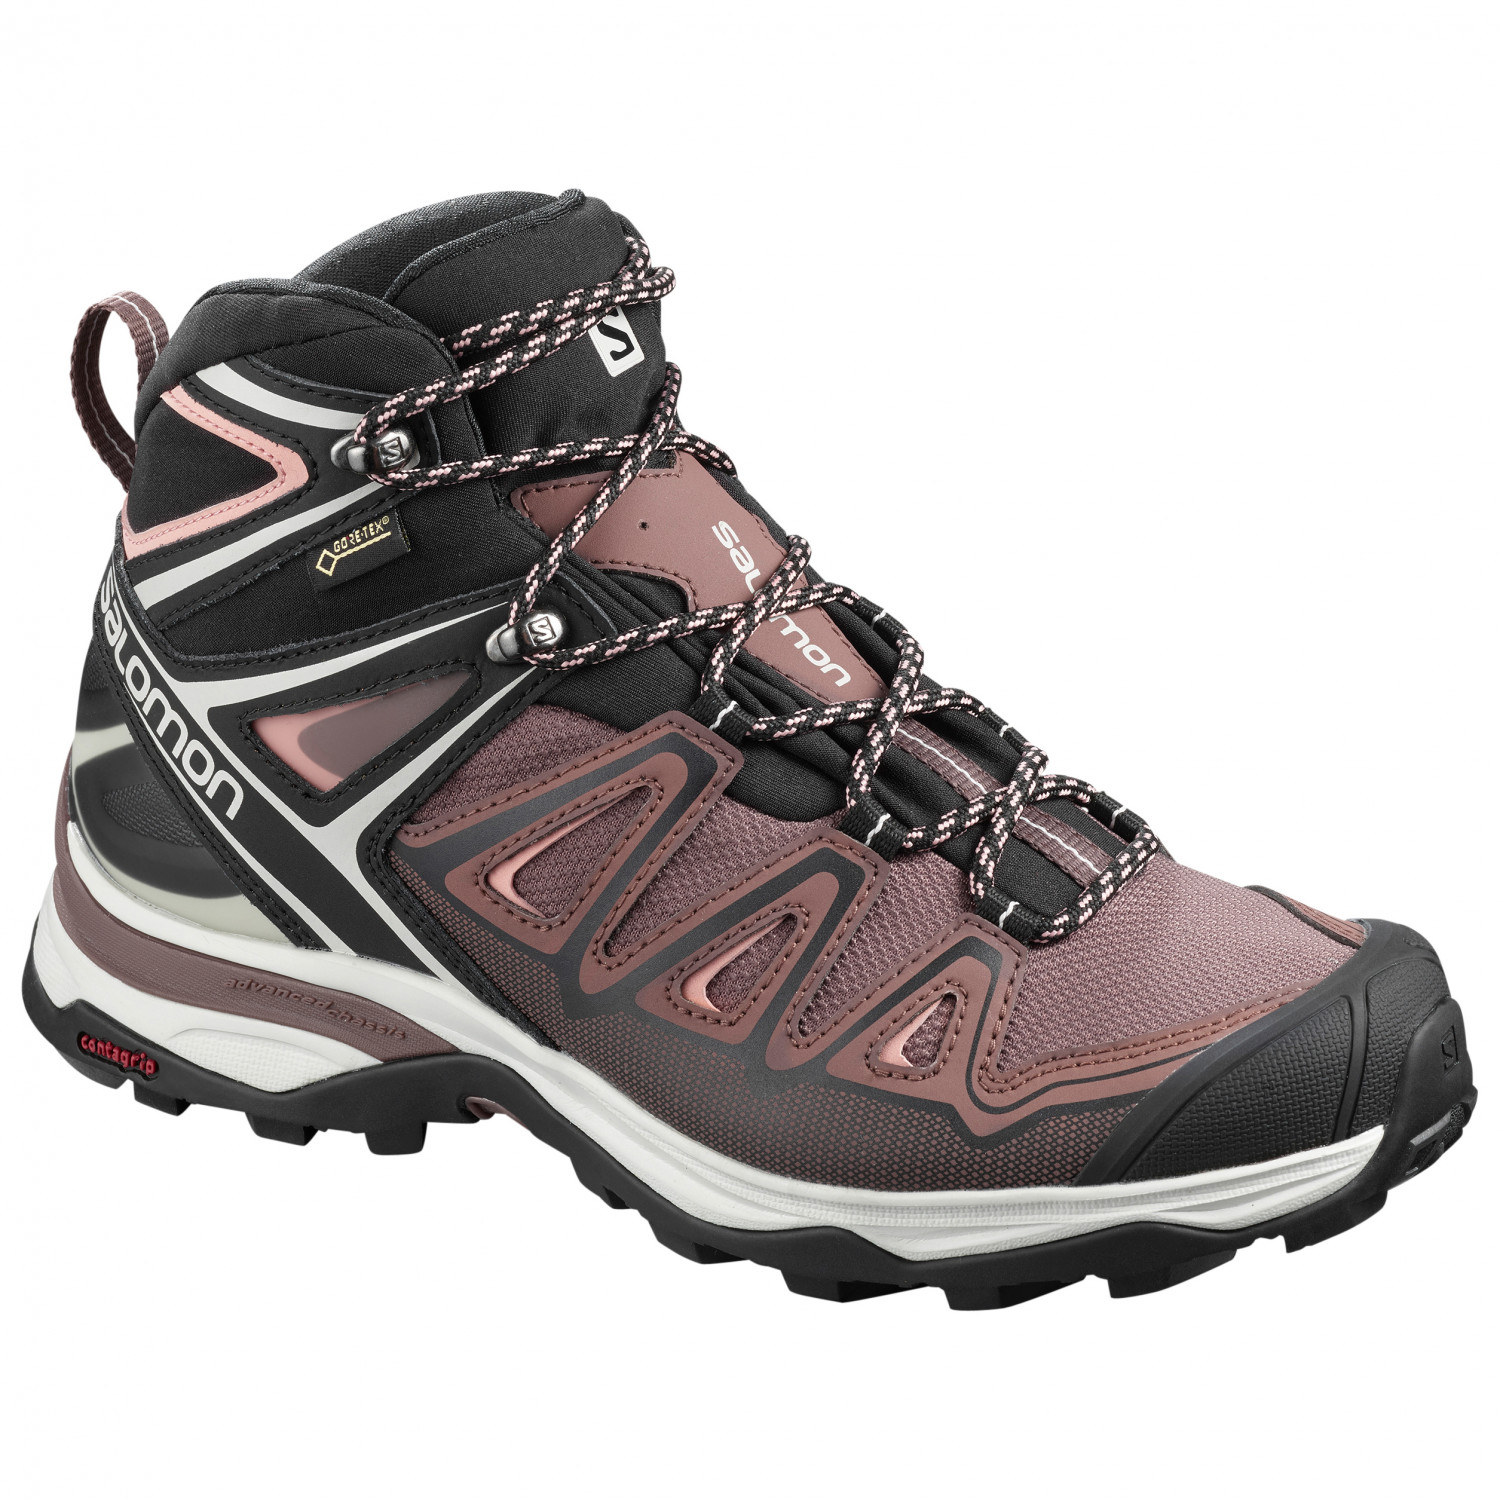 Salomon - Women's X Ultra 3 Mid GTX - Walking boots - Shadow / Castor Gray  / Beach Glass | 5 (UK)